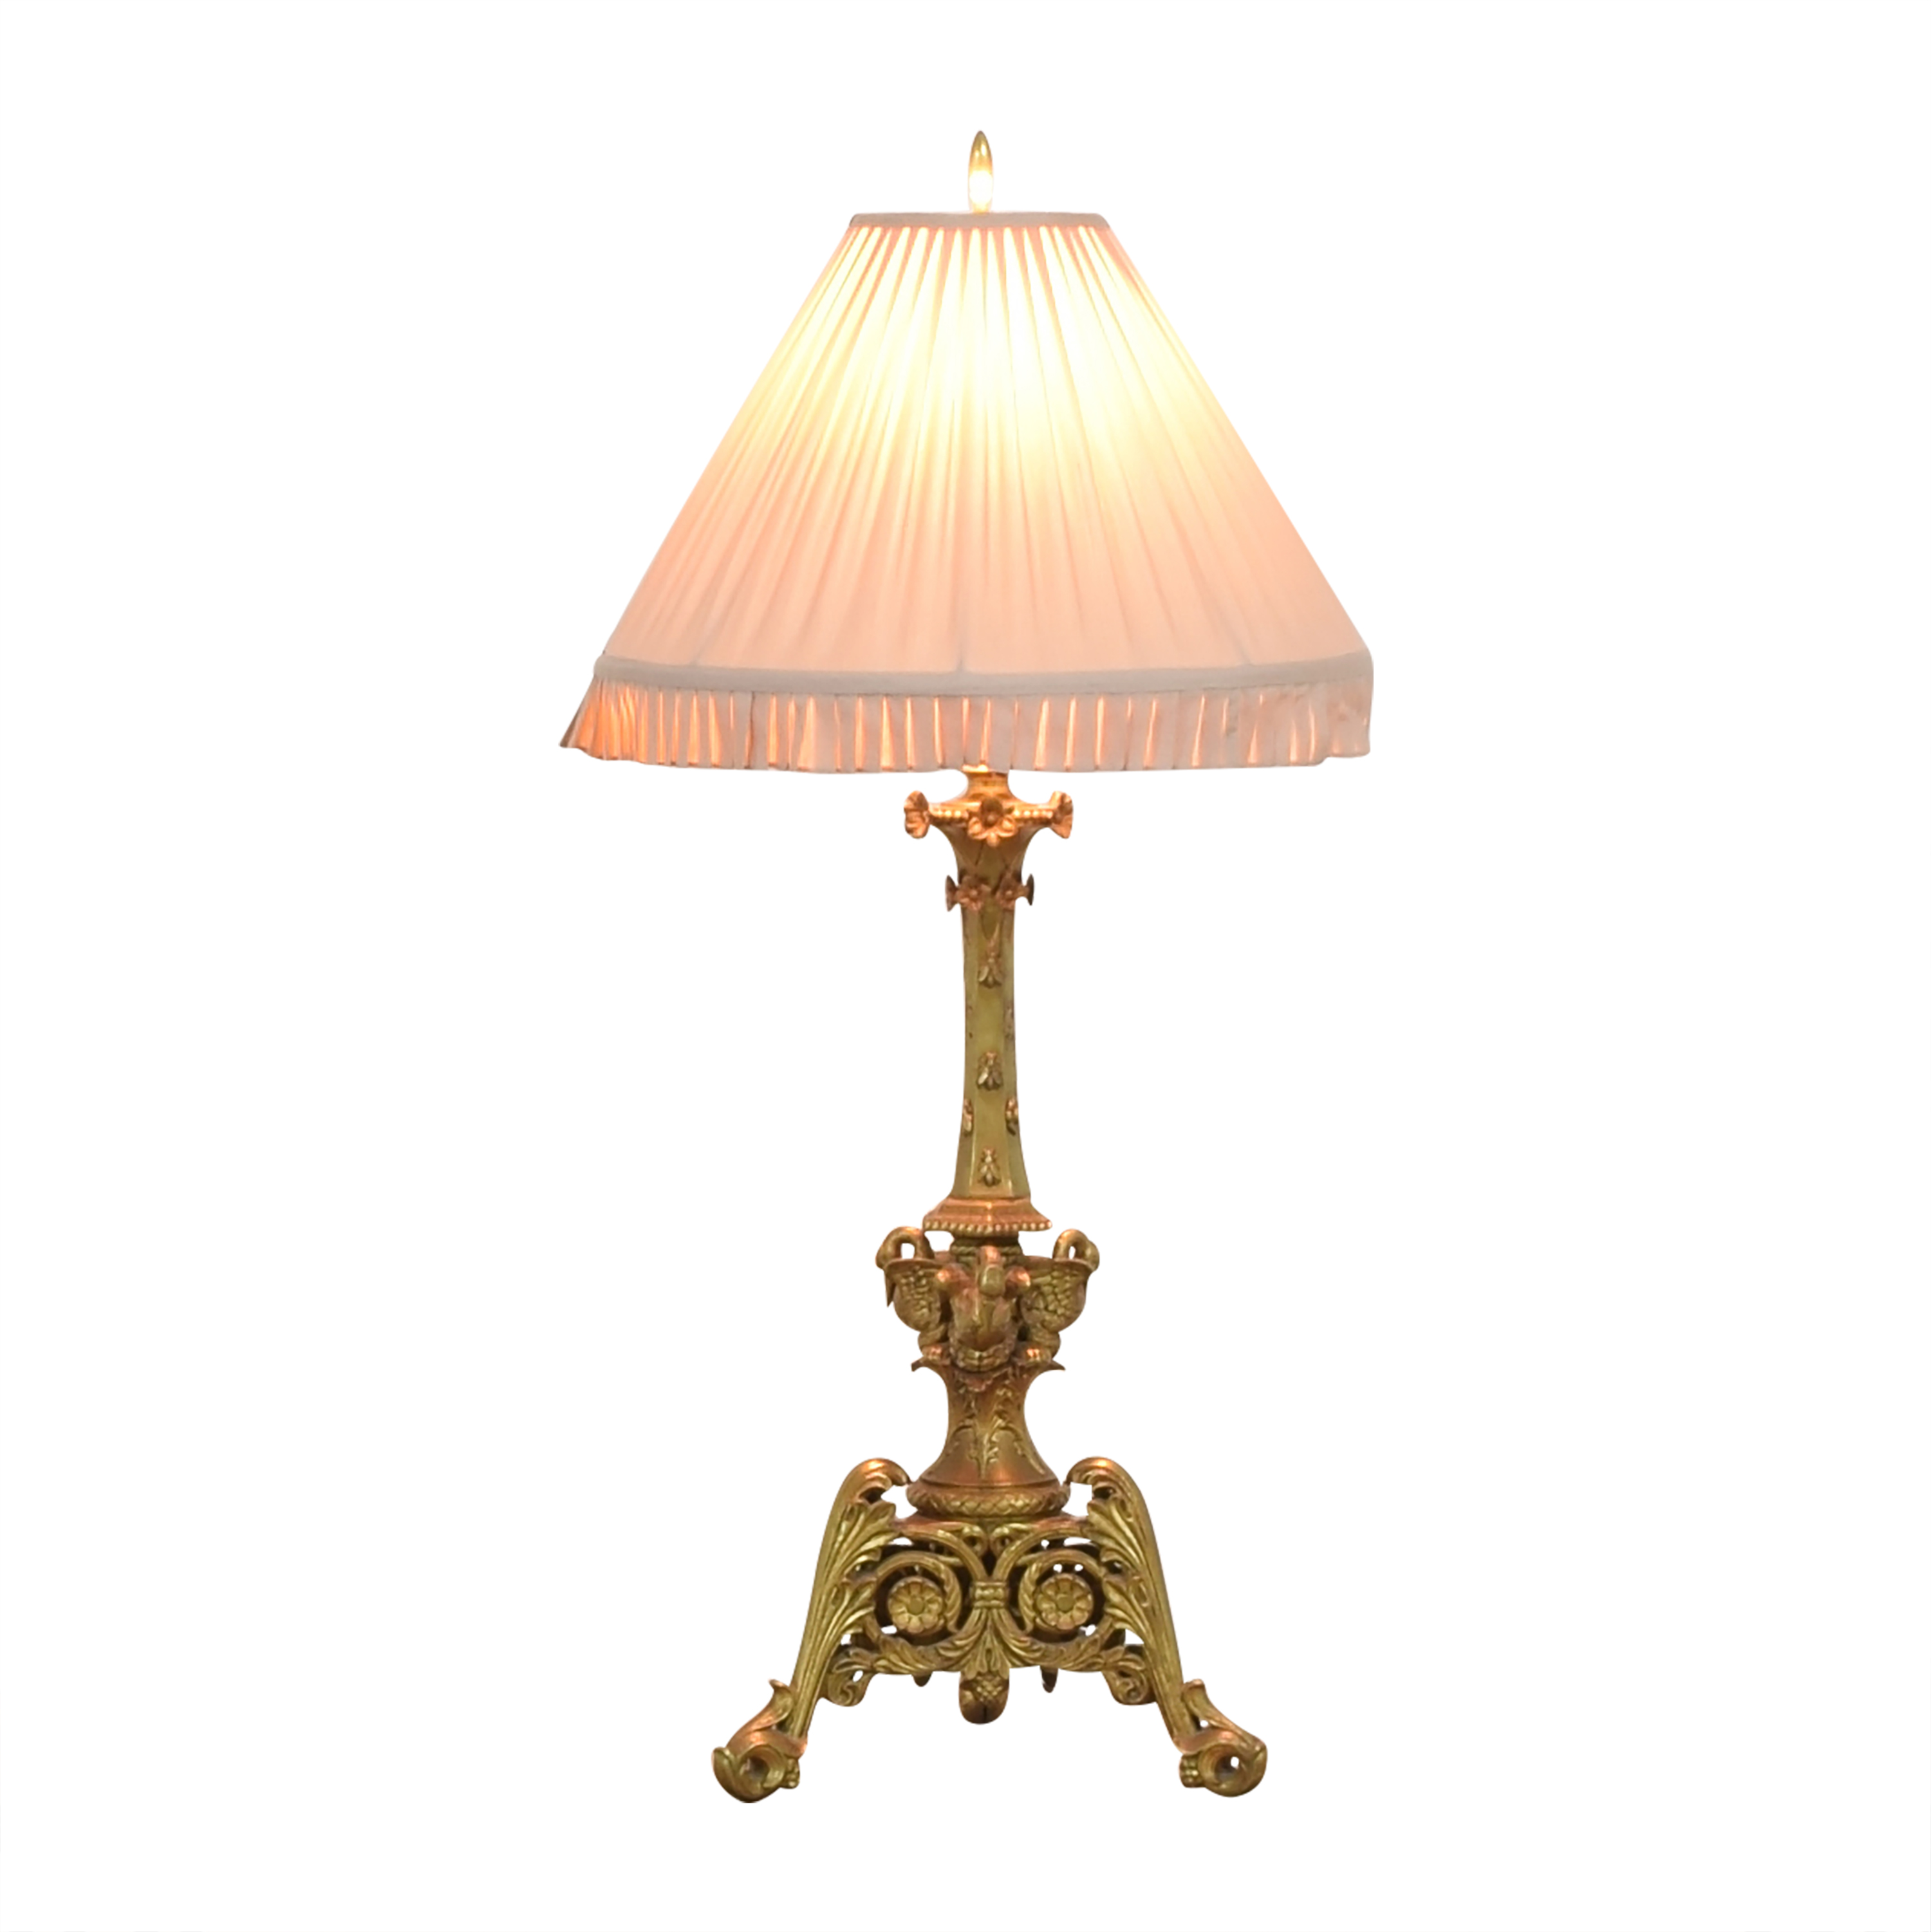 Wescal Wescal Table Lamp discount